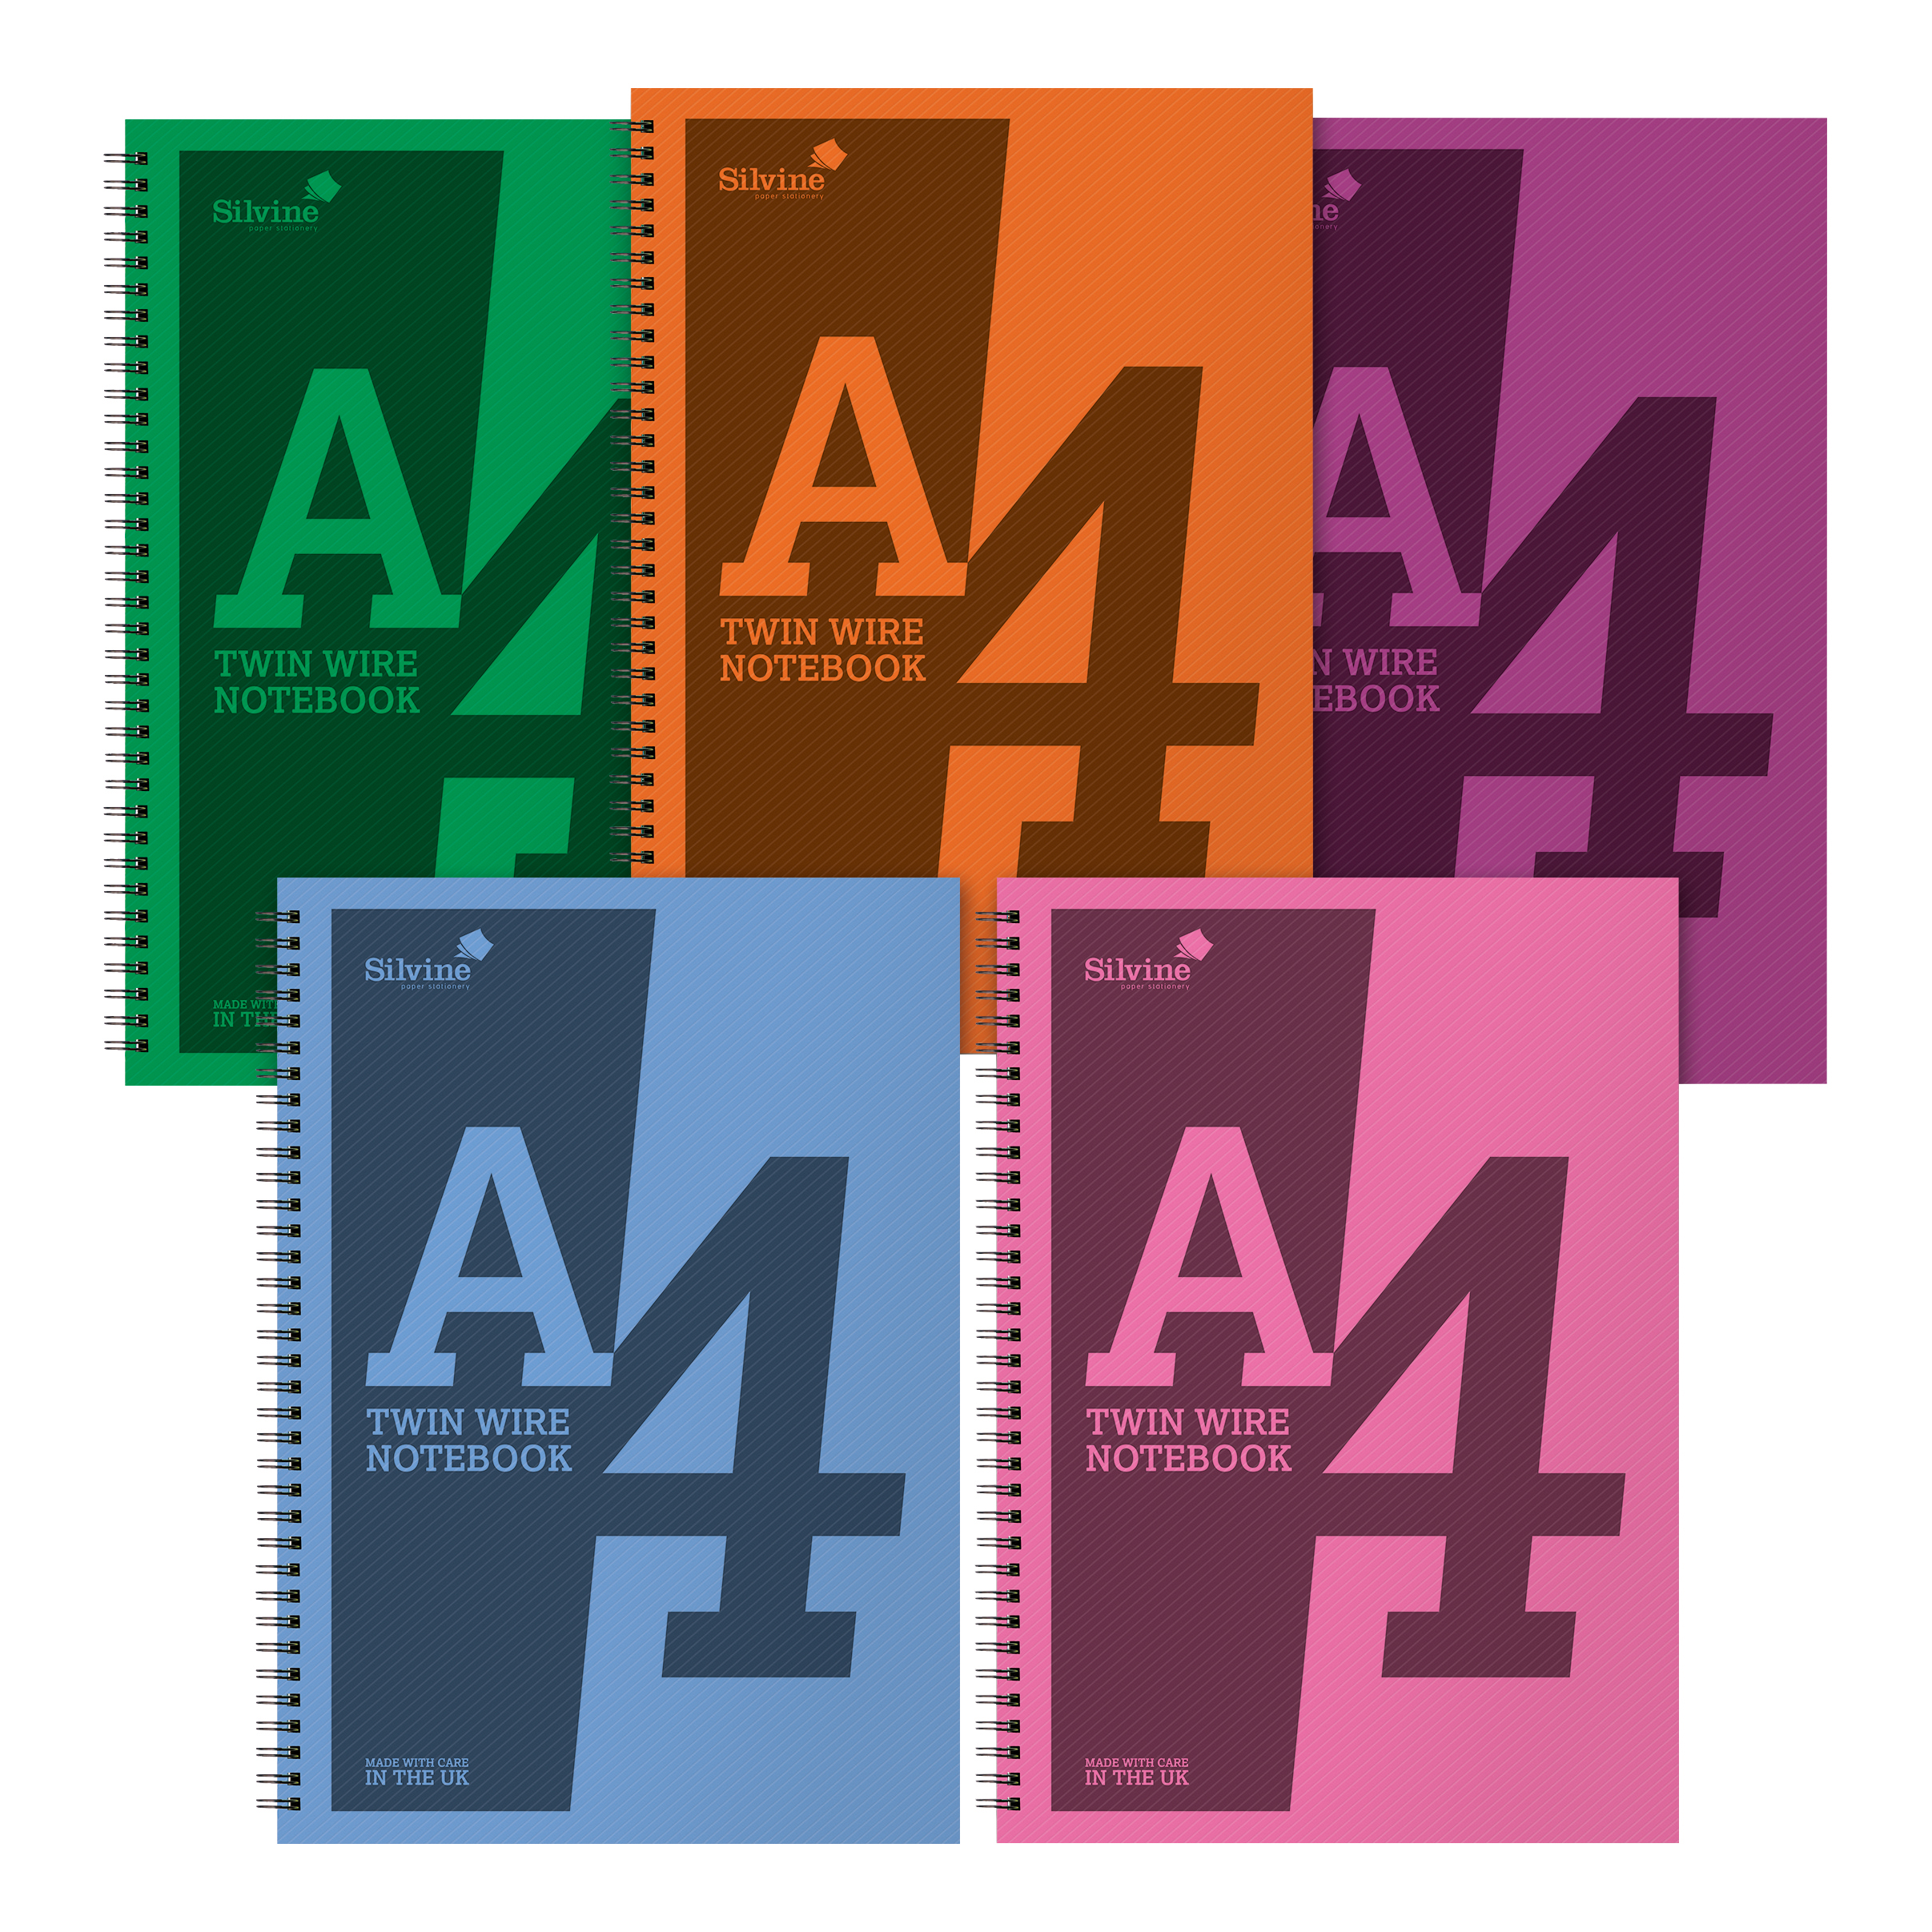 Paper pads or notebooks Silvine Notebook Polypropylene Wirebound 56gsm Ruled 160pp A4 Assorted Ref POLYA4ACPack 5